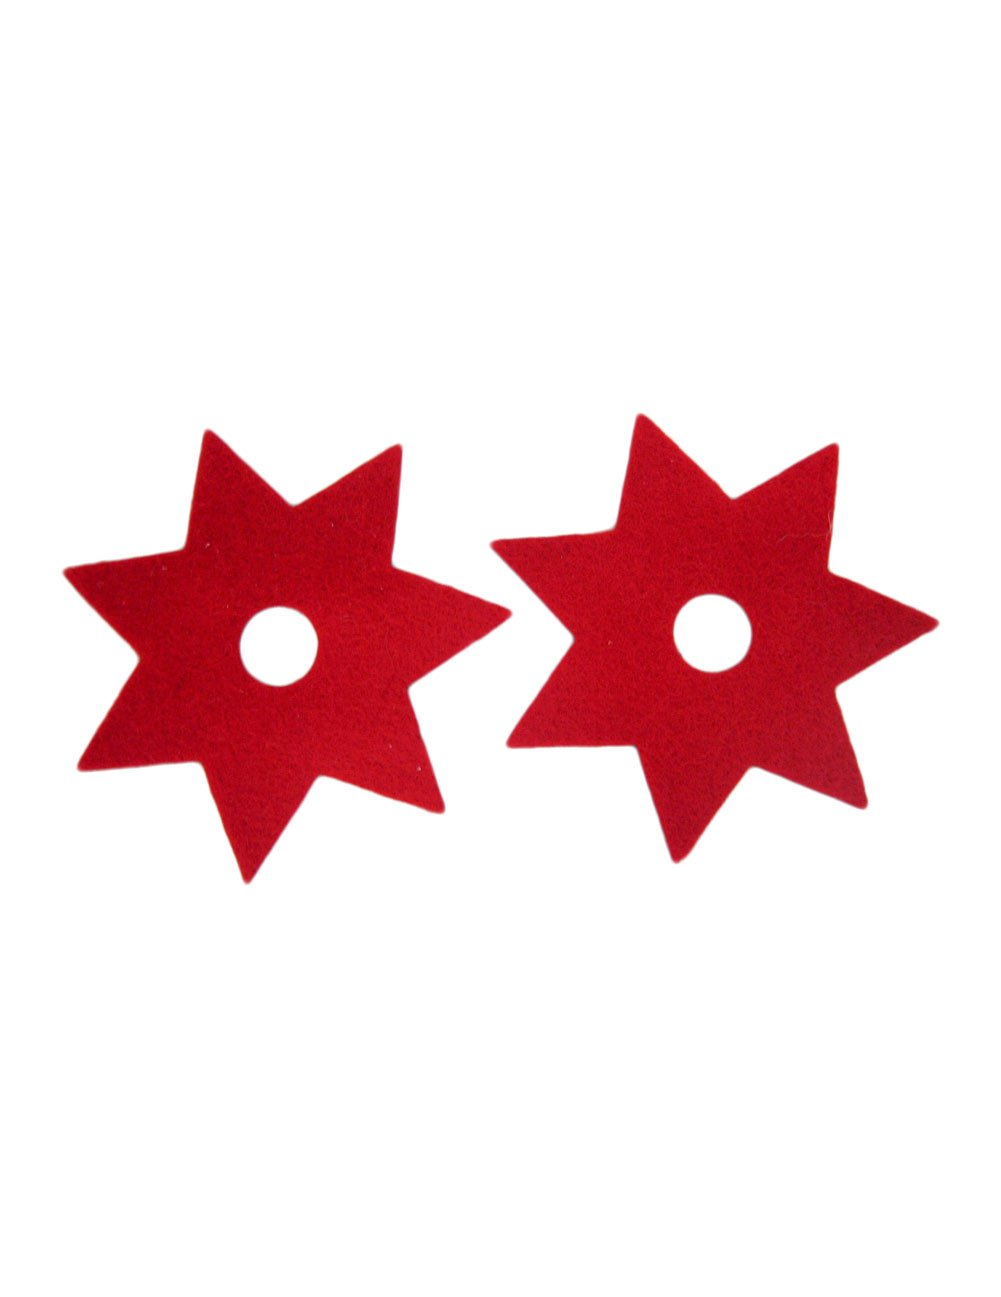 Amazon.com: Felt Magnets, Ninja Star: Red, 2 Pack ...